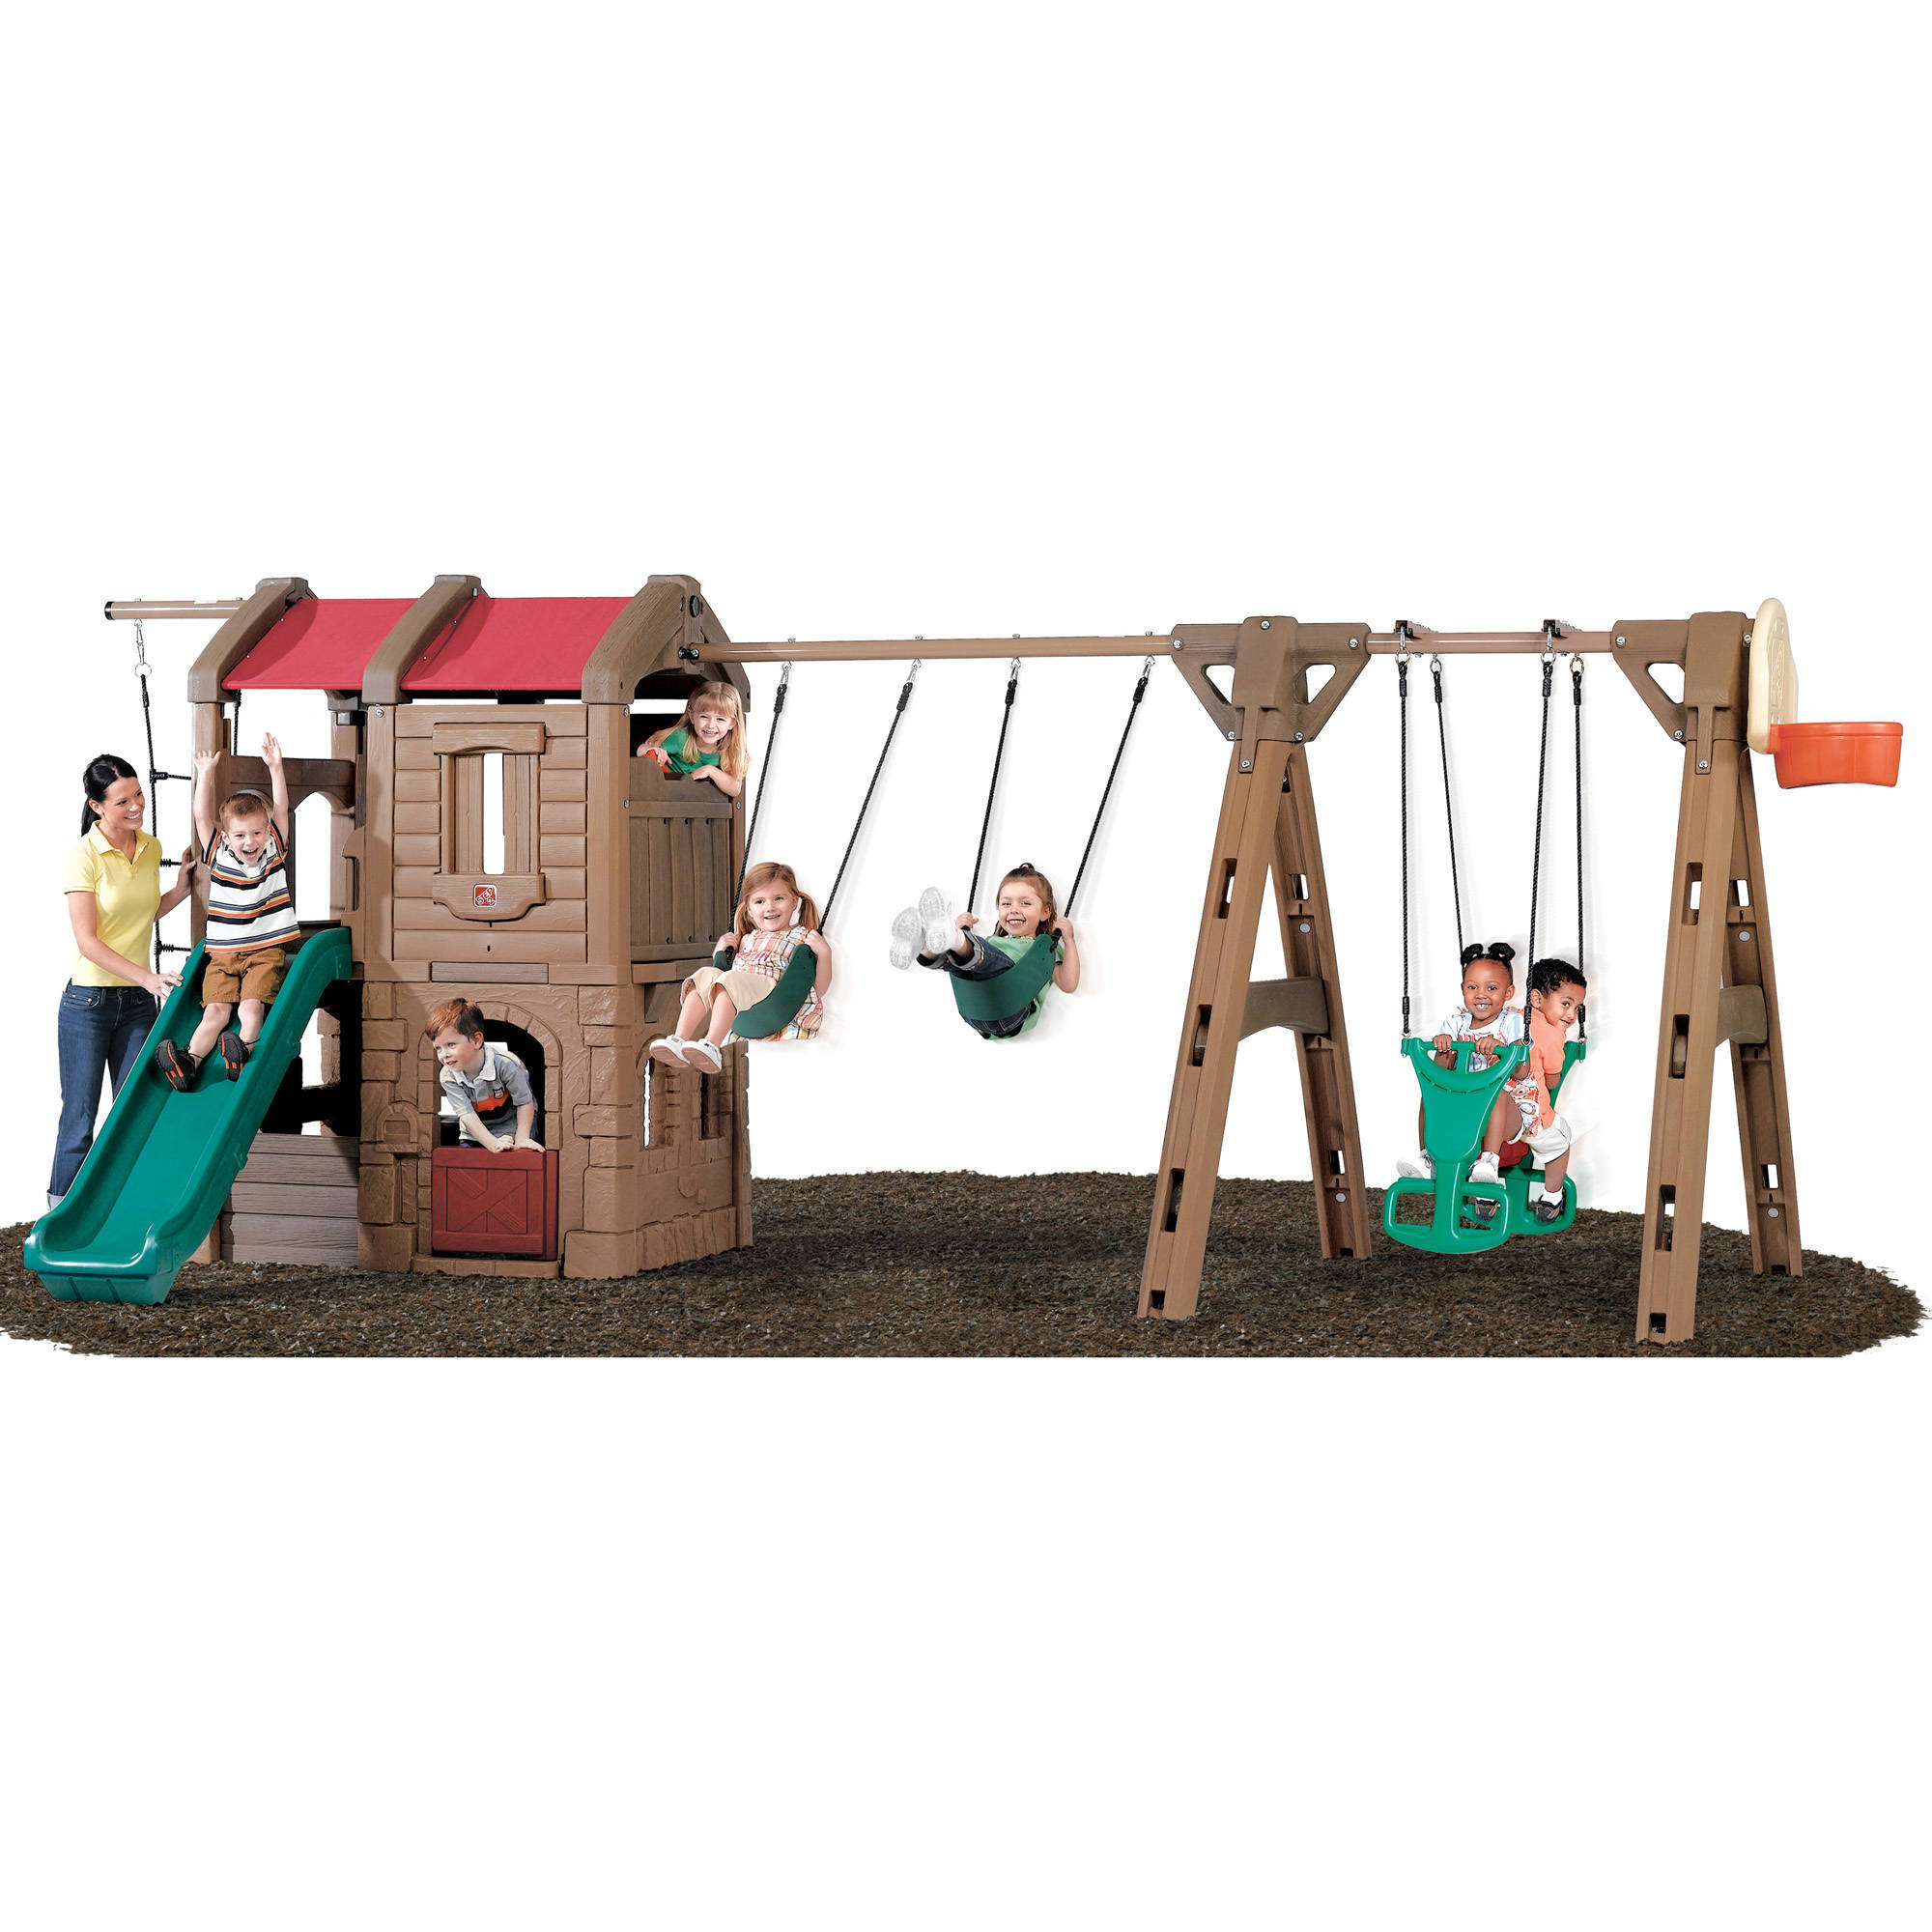 Step2 Naturally Playful Adventure Lodge Play Center Swing Set with Glider and 6' Slide